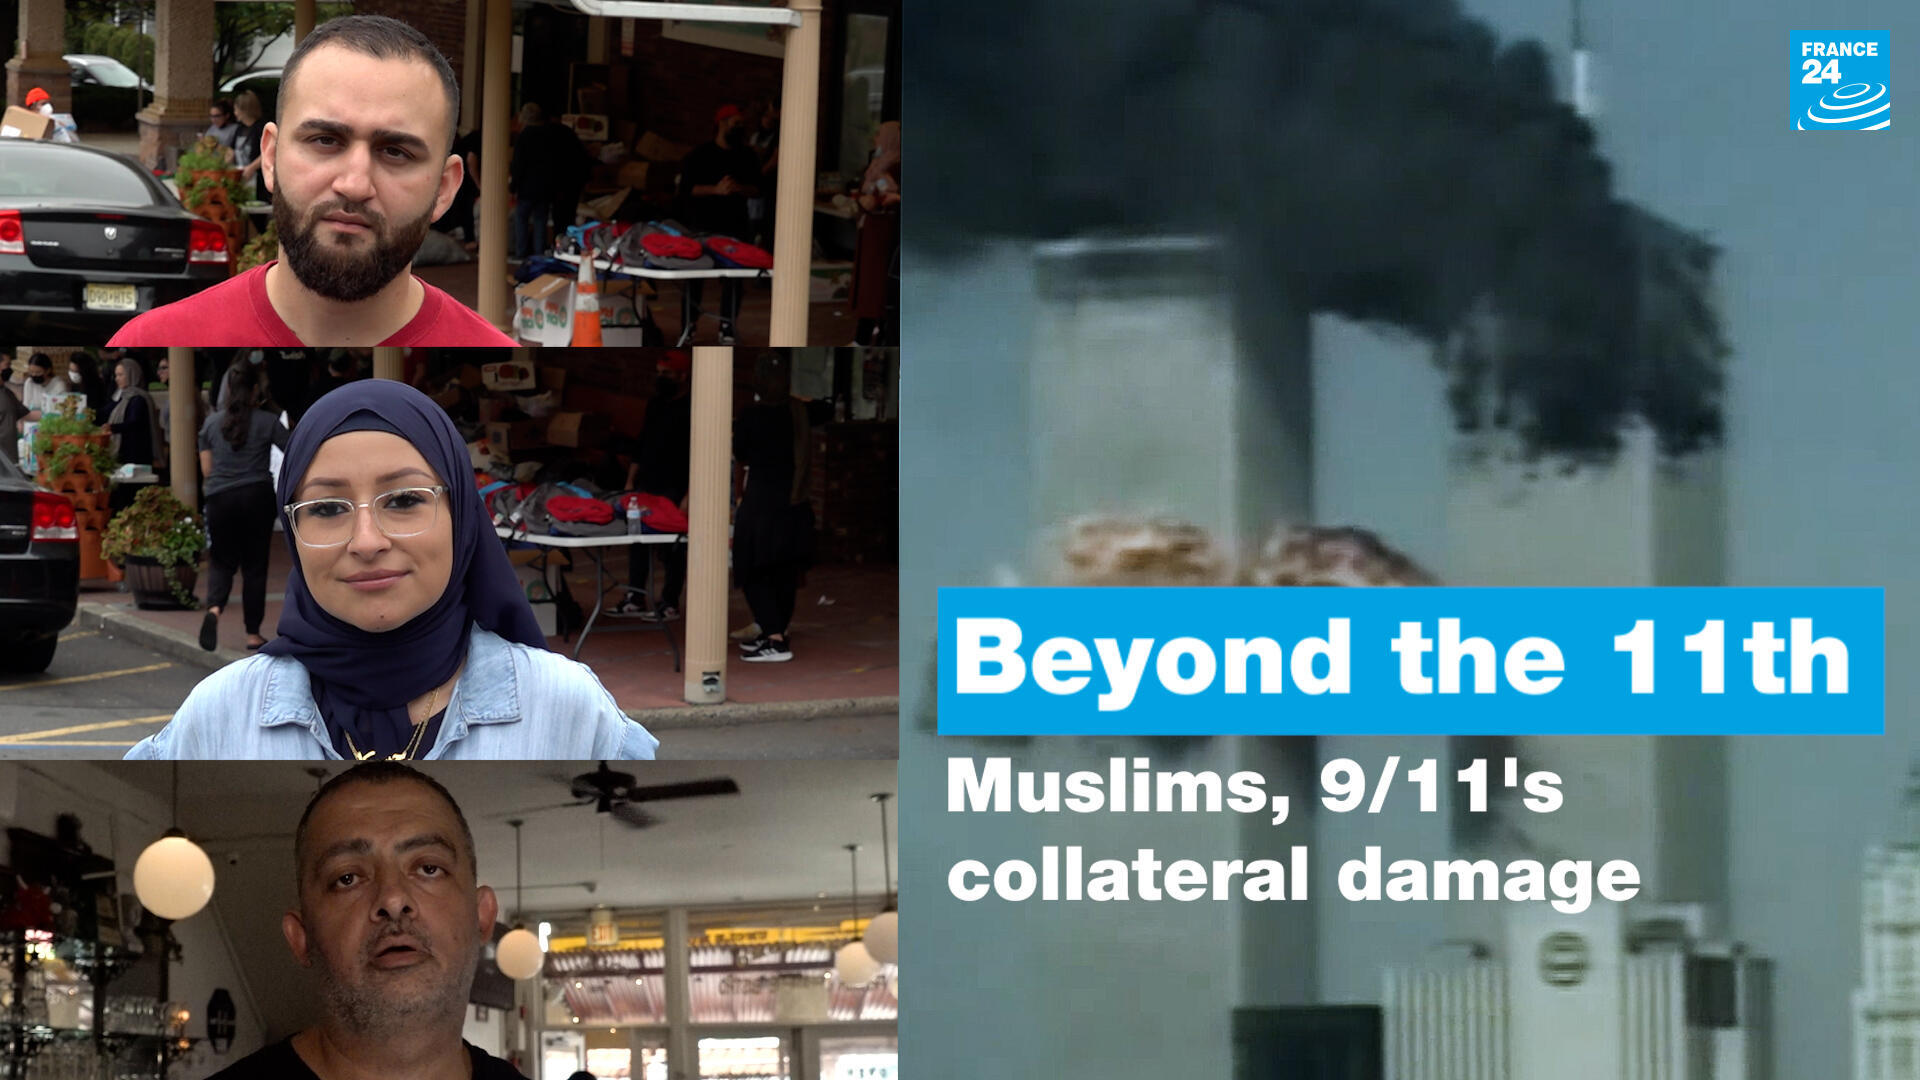 Muslim, 9/11's collateral damage